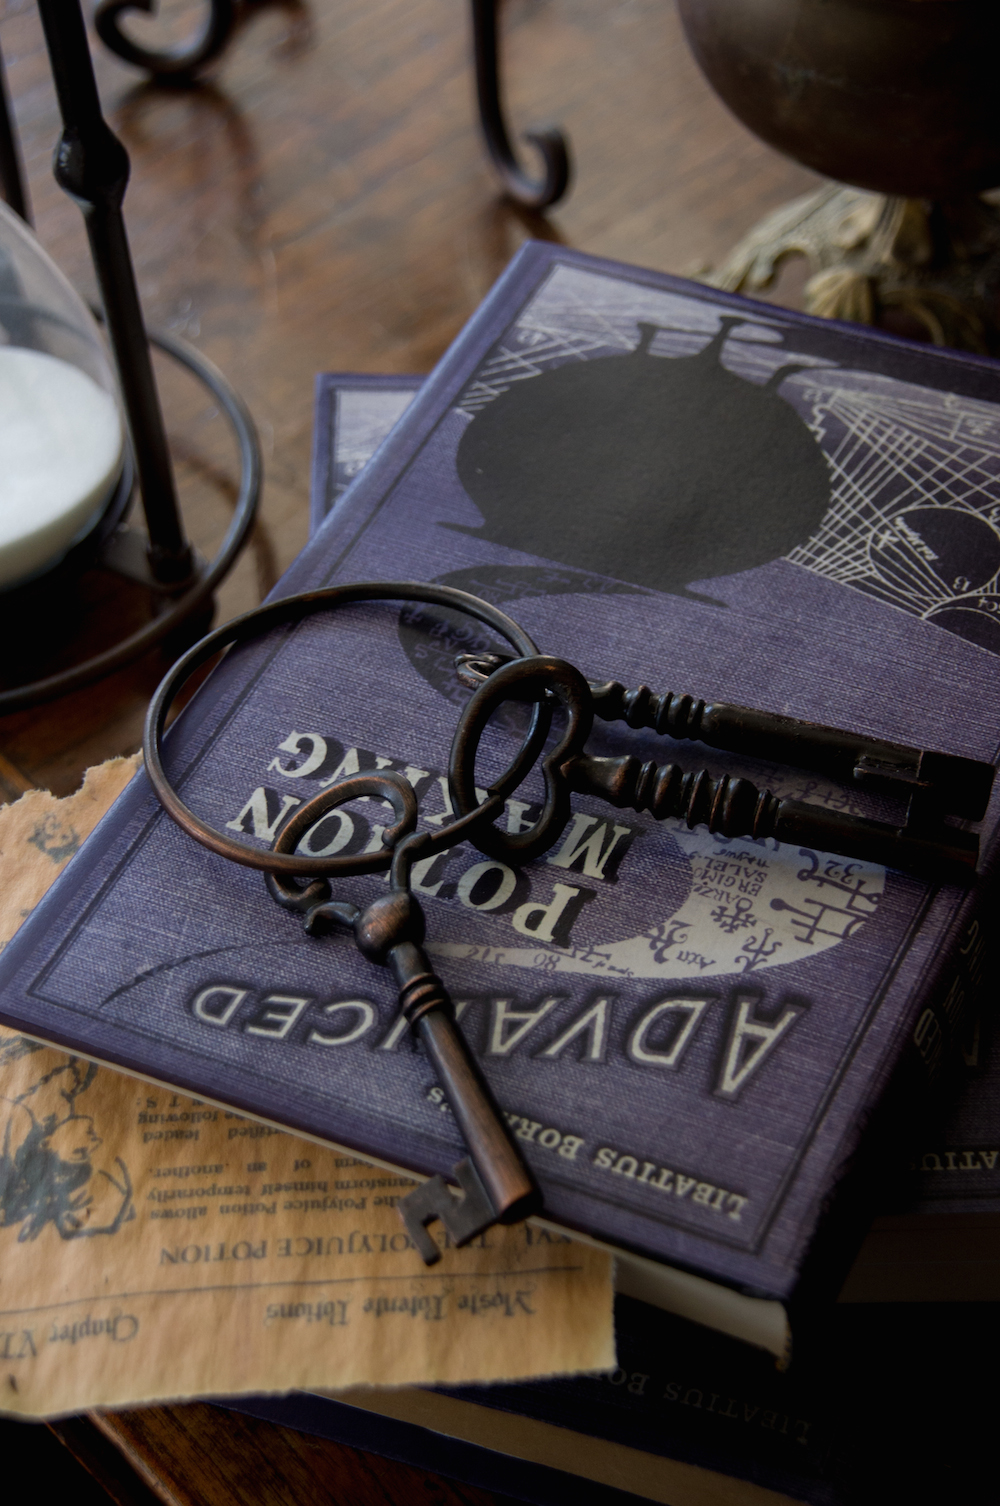 A Harry Potter Hogwarts Dinner Party  Part I  In Literature